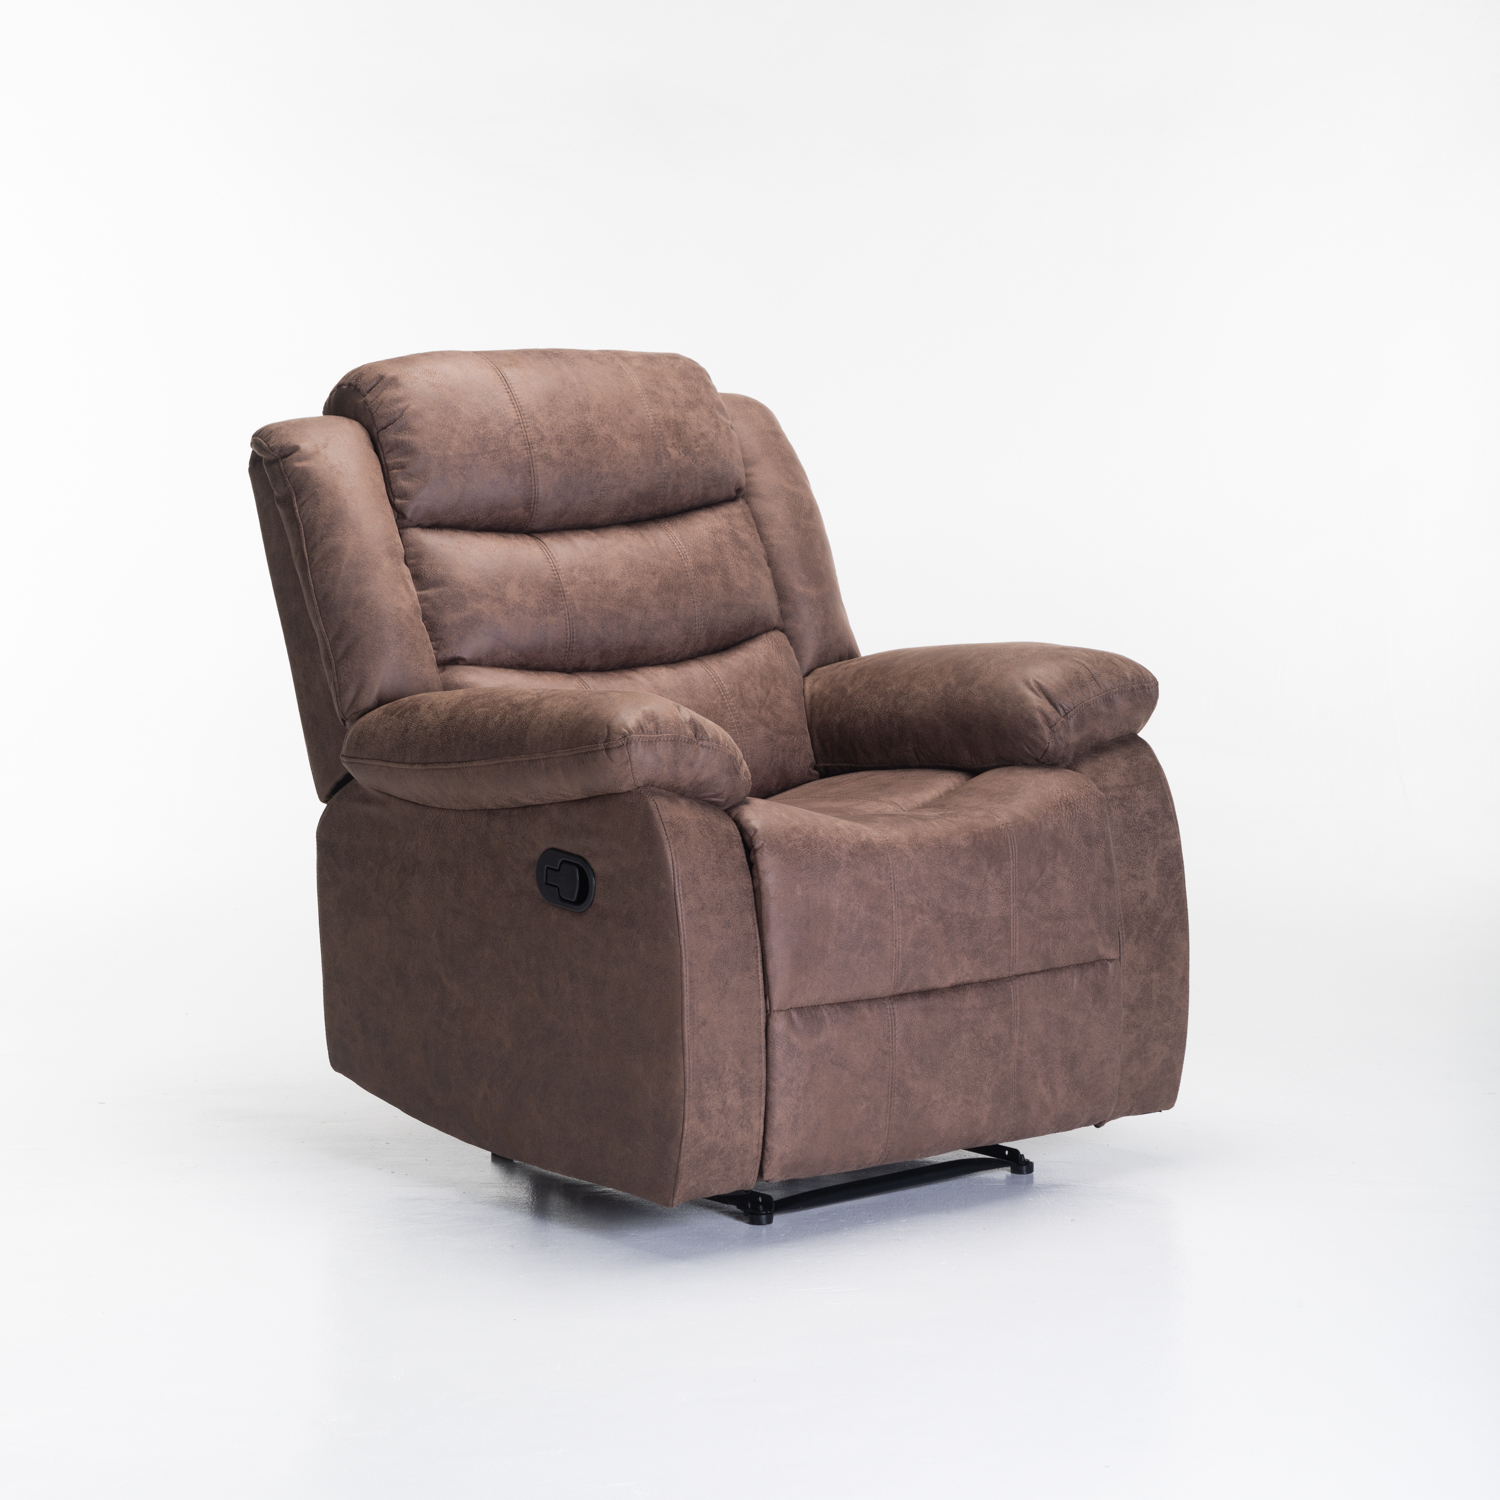 Decofurn Furniture :: YUZI LUXURY FABRIC ARMCHAIR RECLINER